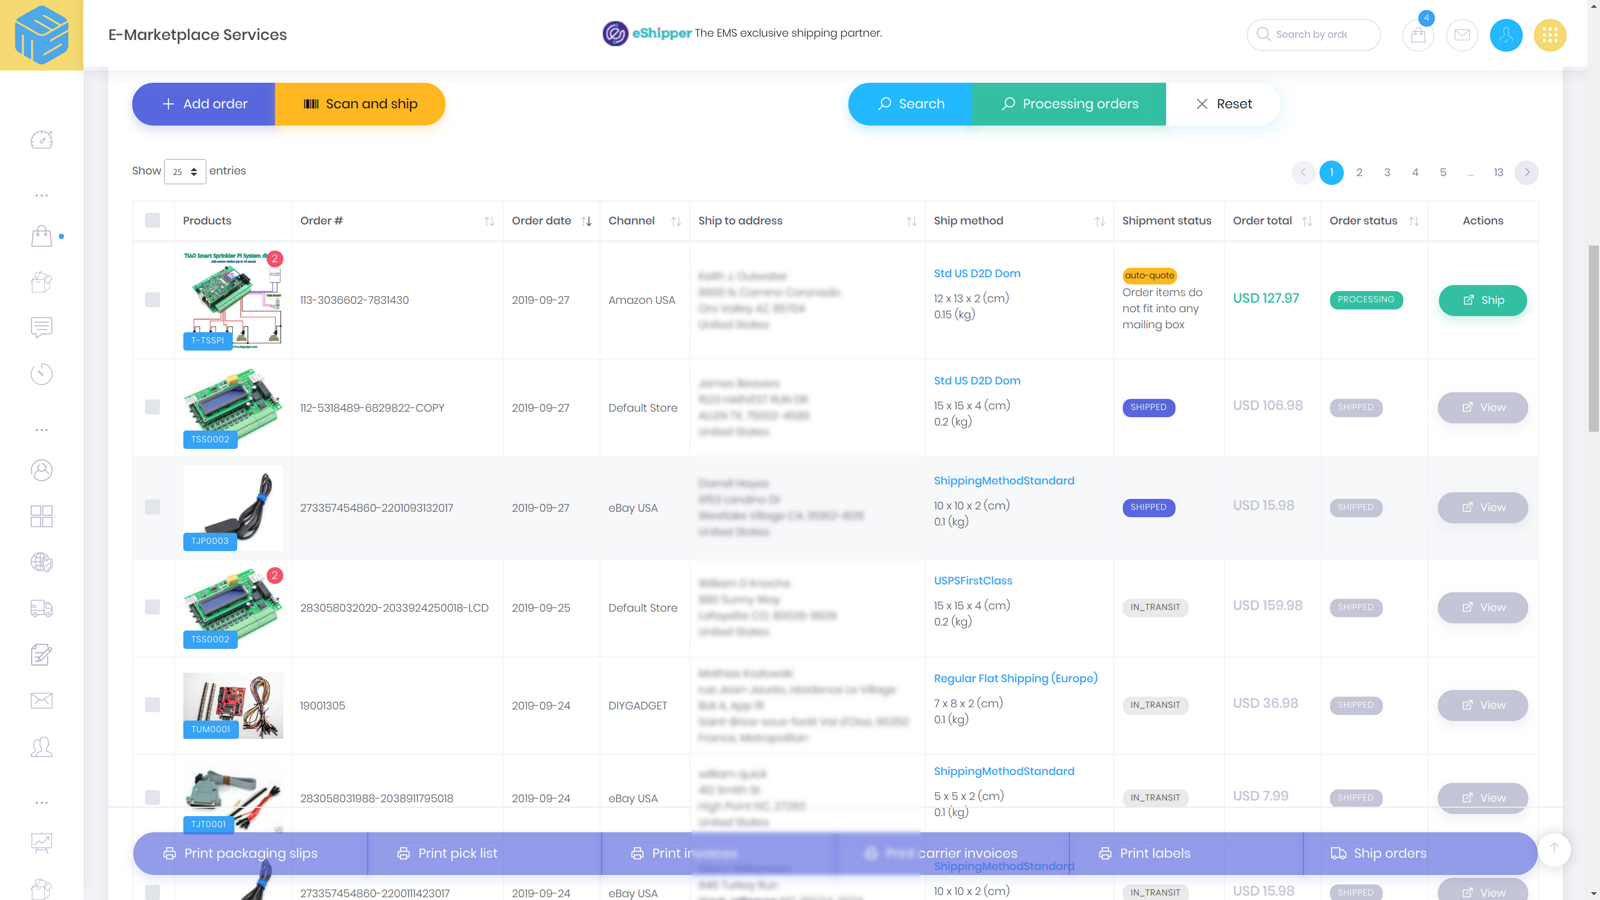 Centralized order list view